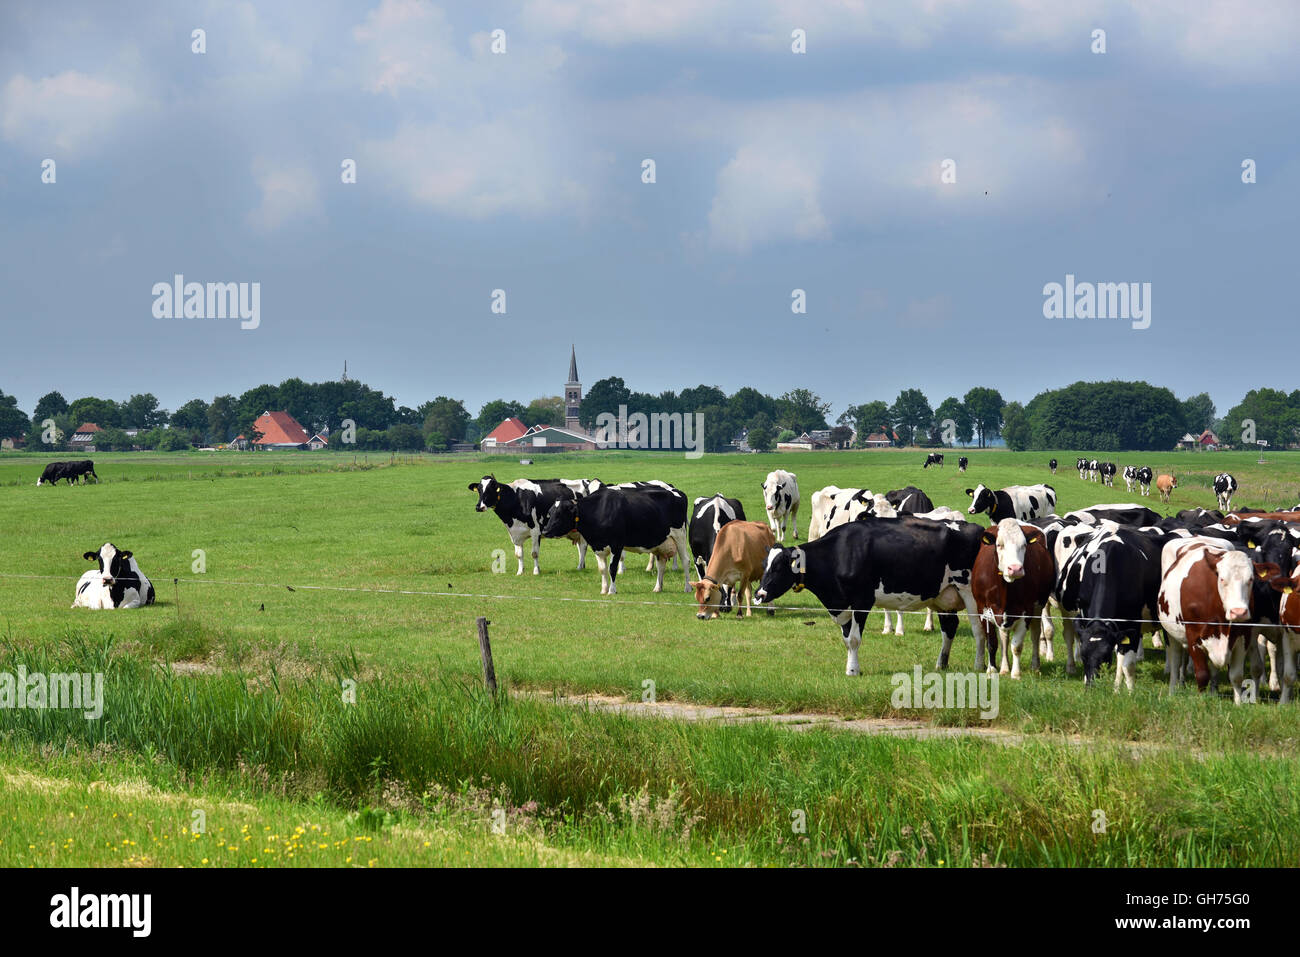 Friesian landscape with cattle in Friesland, The Netherlands. - Stock Image